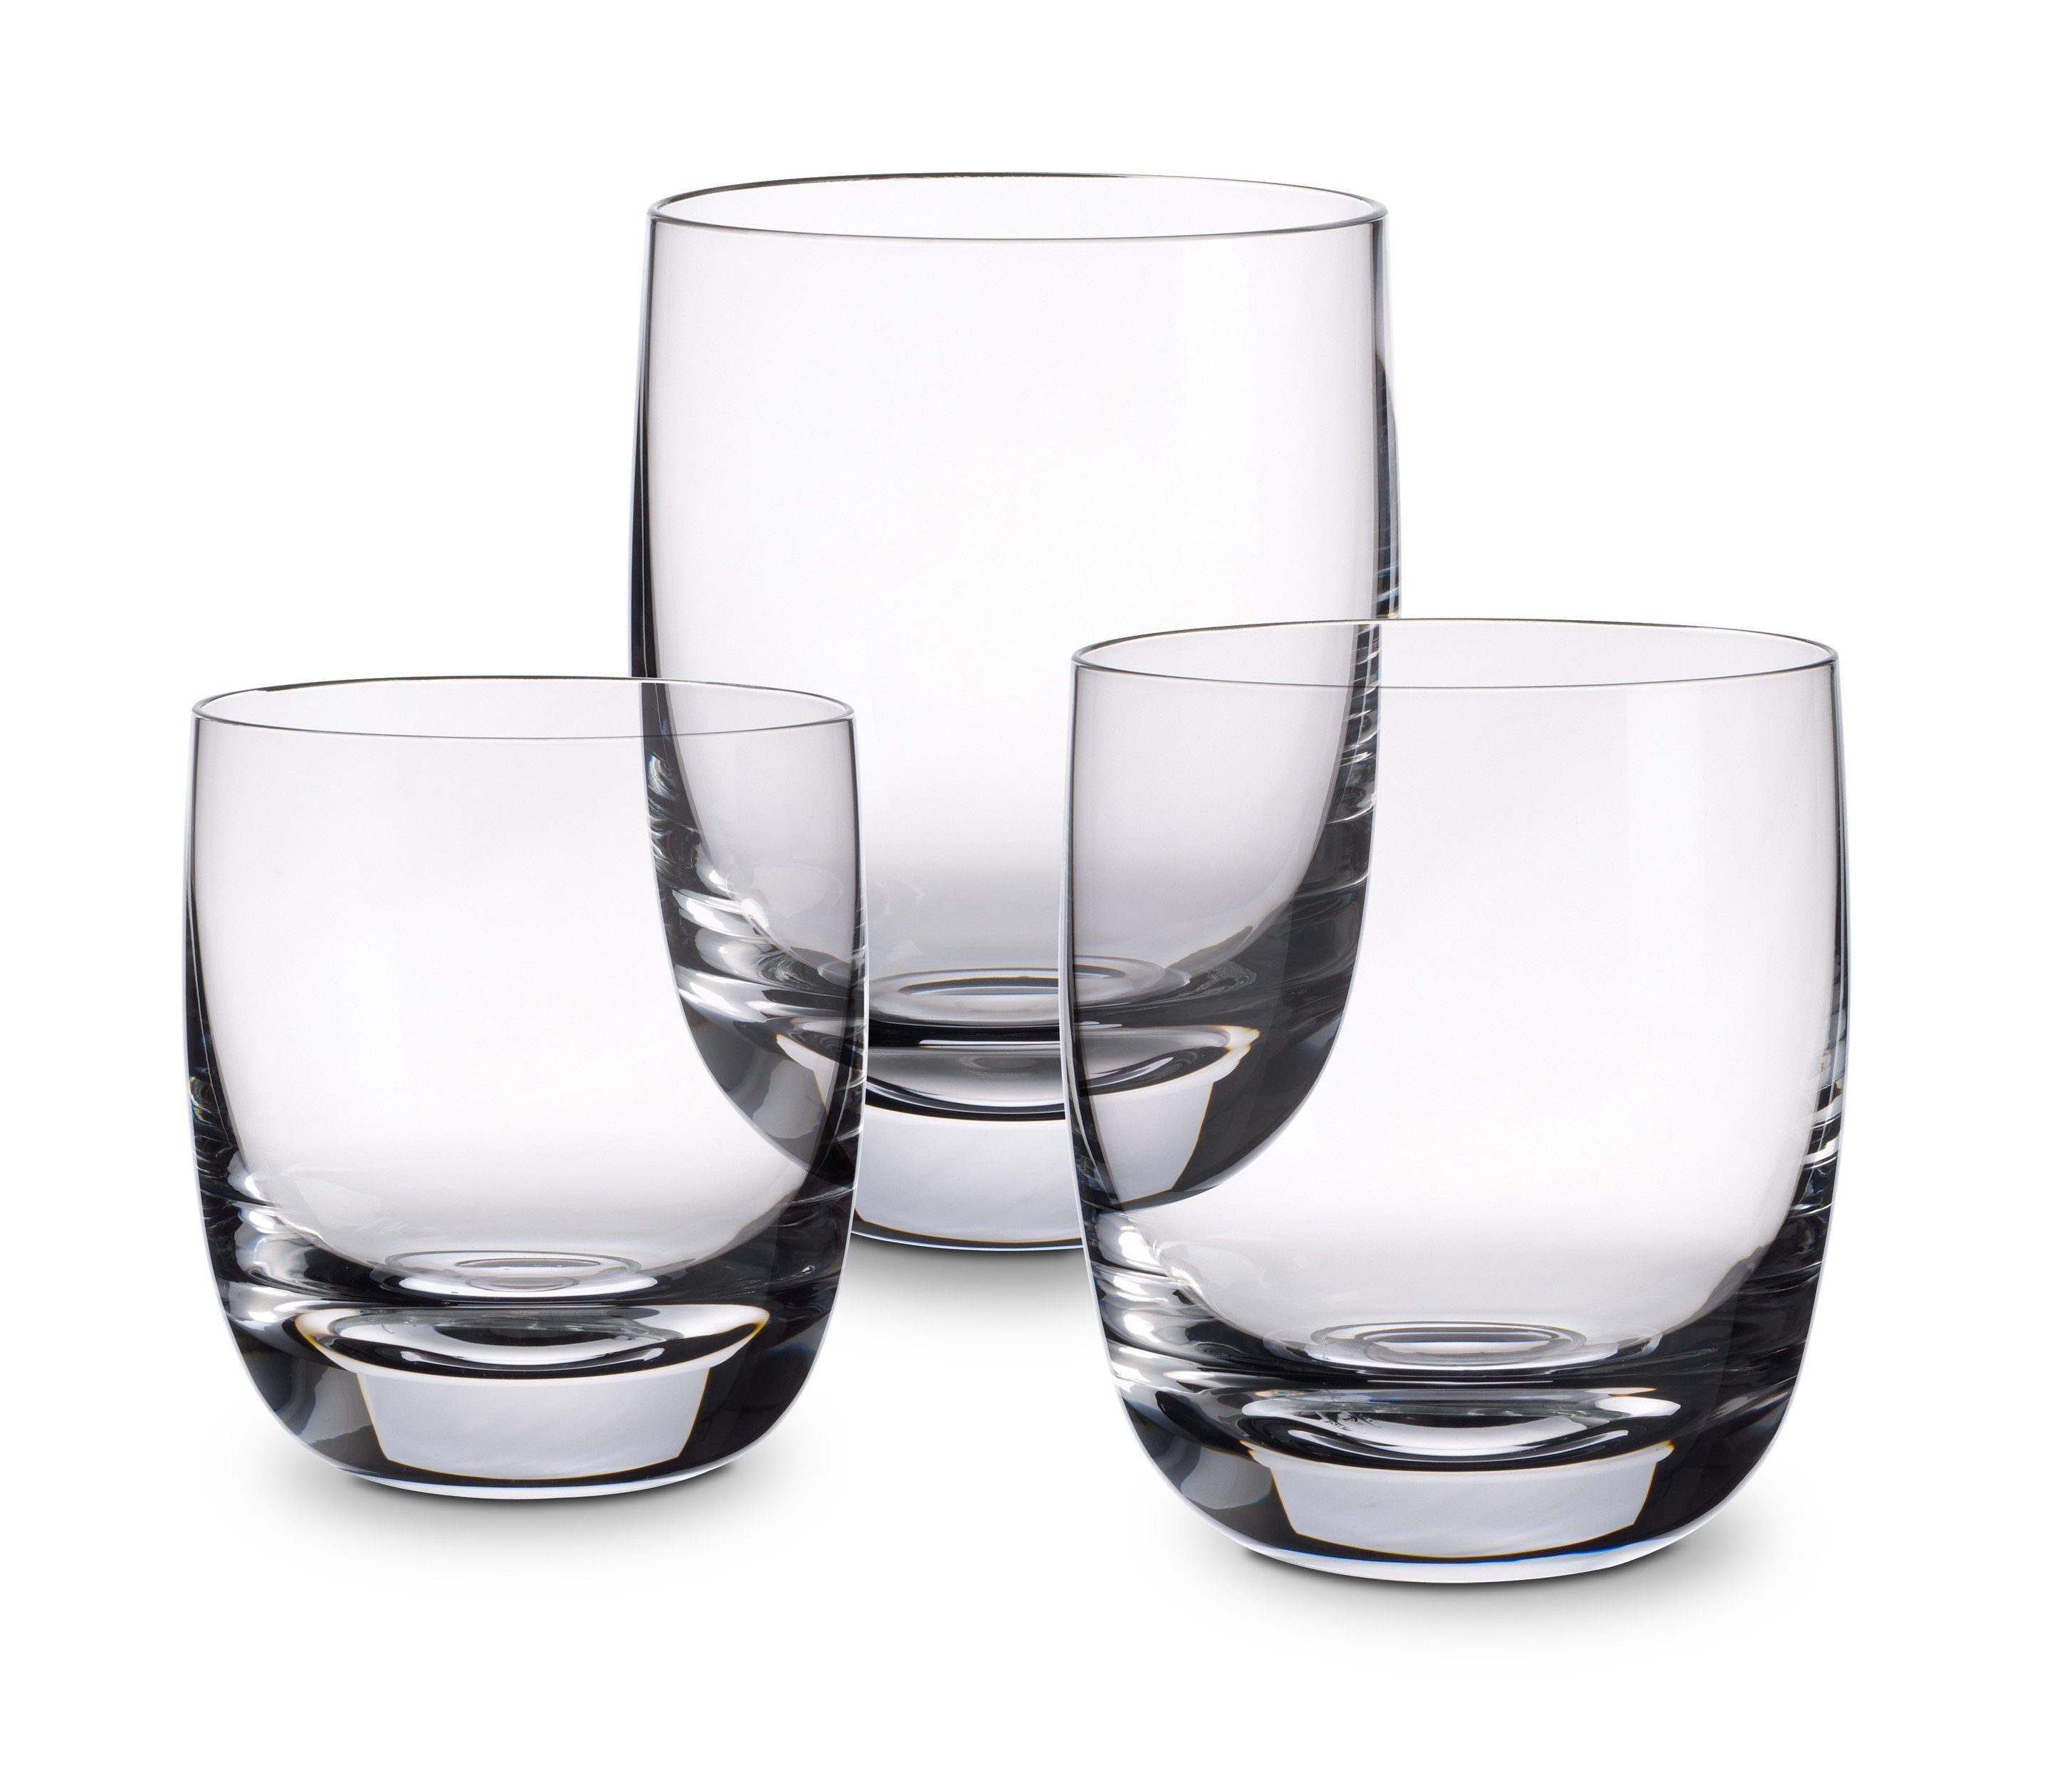 Villeroy & Boch Scotch Whisky Glas No. 1 Villeroy & Boch »Scotch Whisky - Blended Scotch«